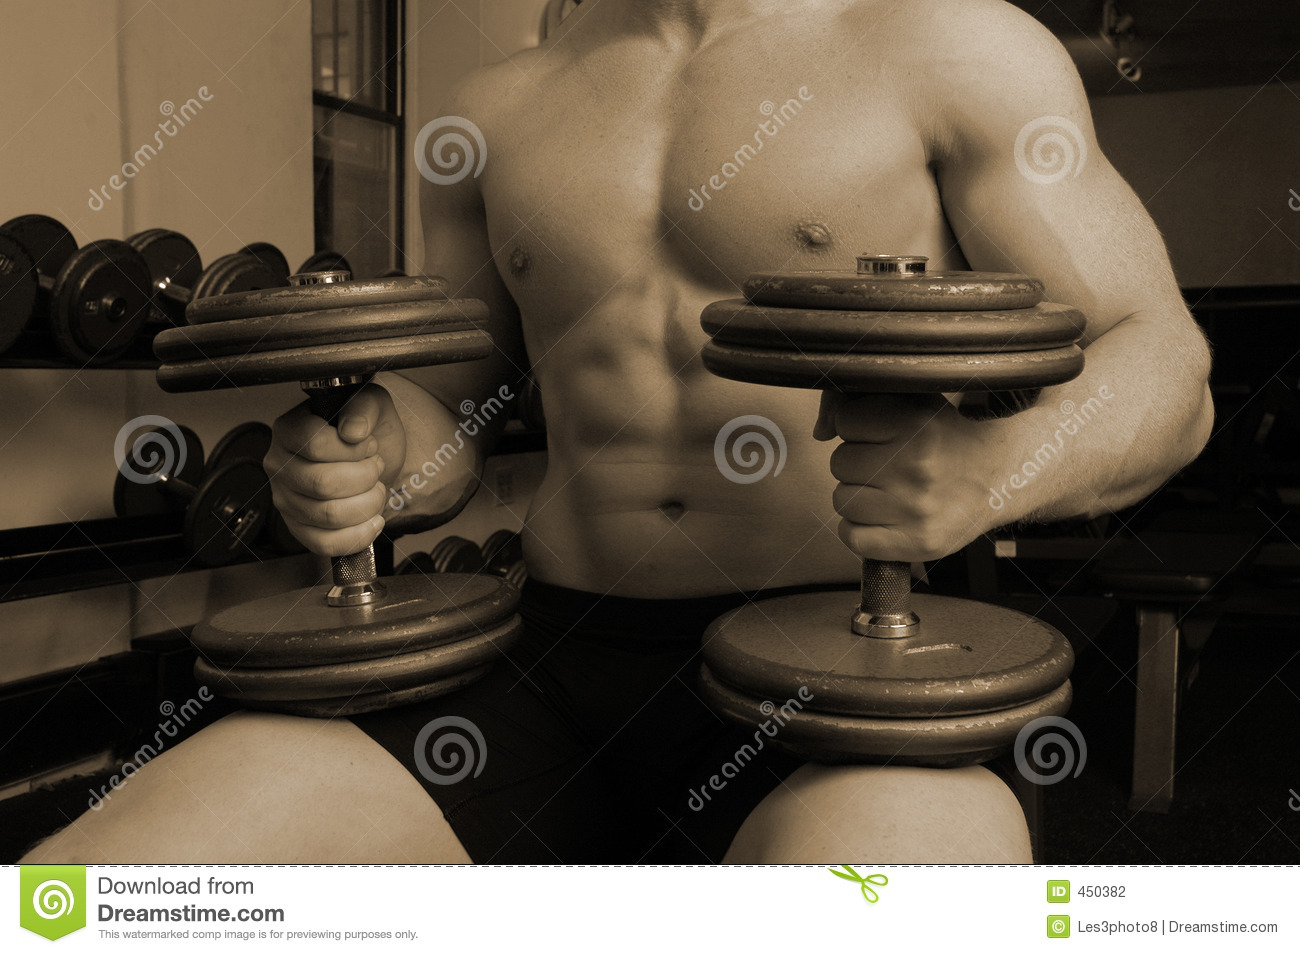 Download In the gym stock photo. Image of mono, muscle, buff, heavy - 450382